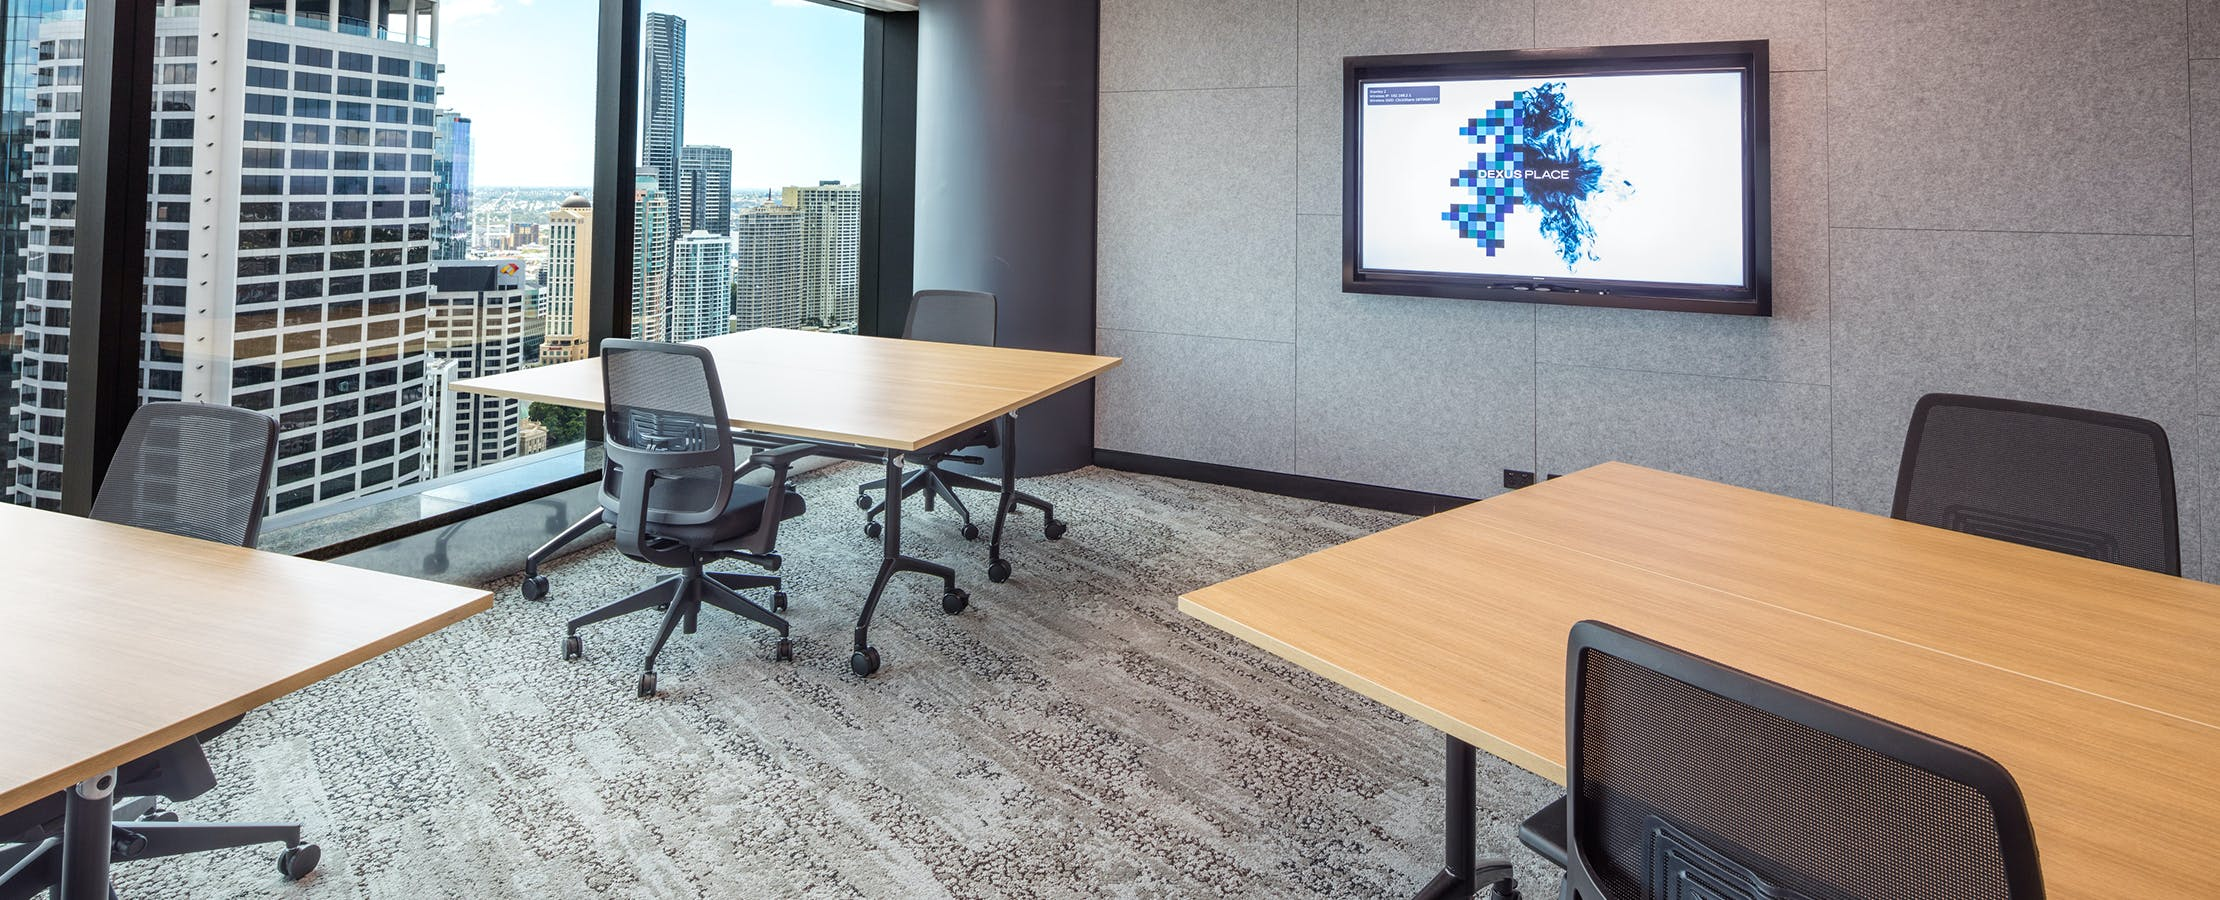 Training room at Dexus Place, image 1